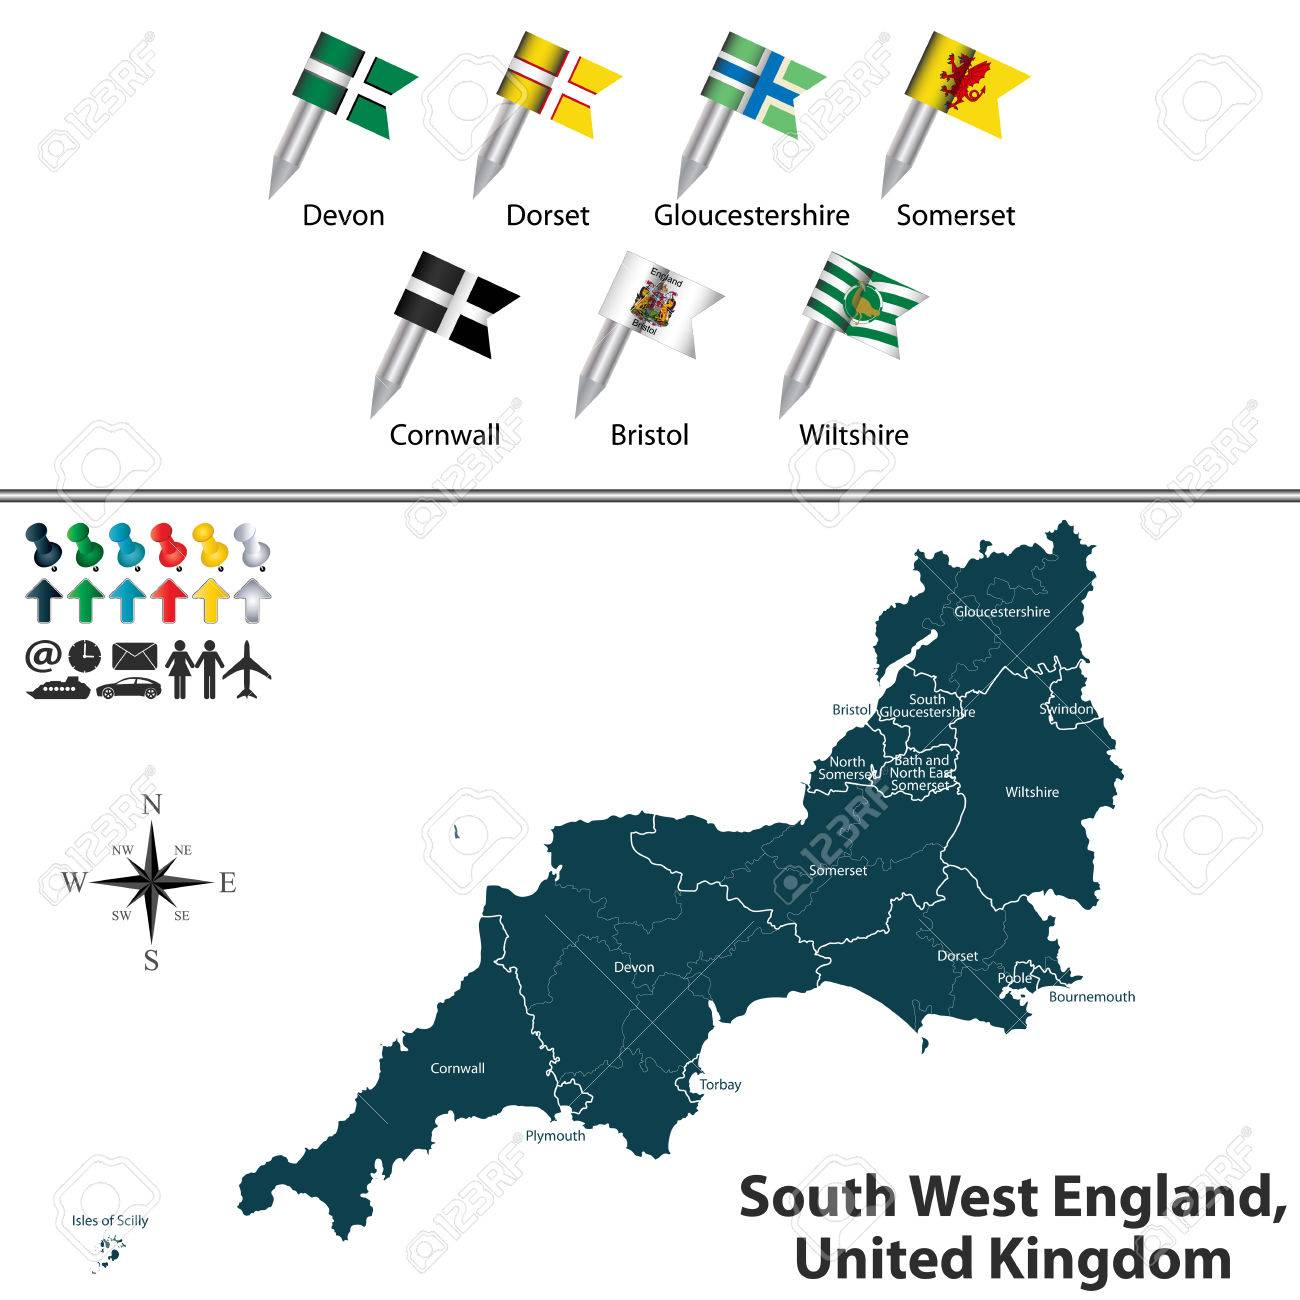 Map Of The South West Of England.Map Of South West England United Kingdom With Regions And Flags